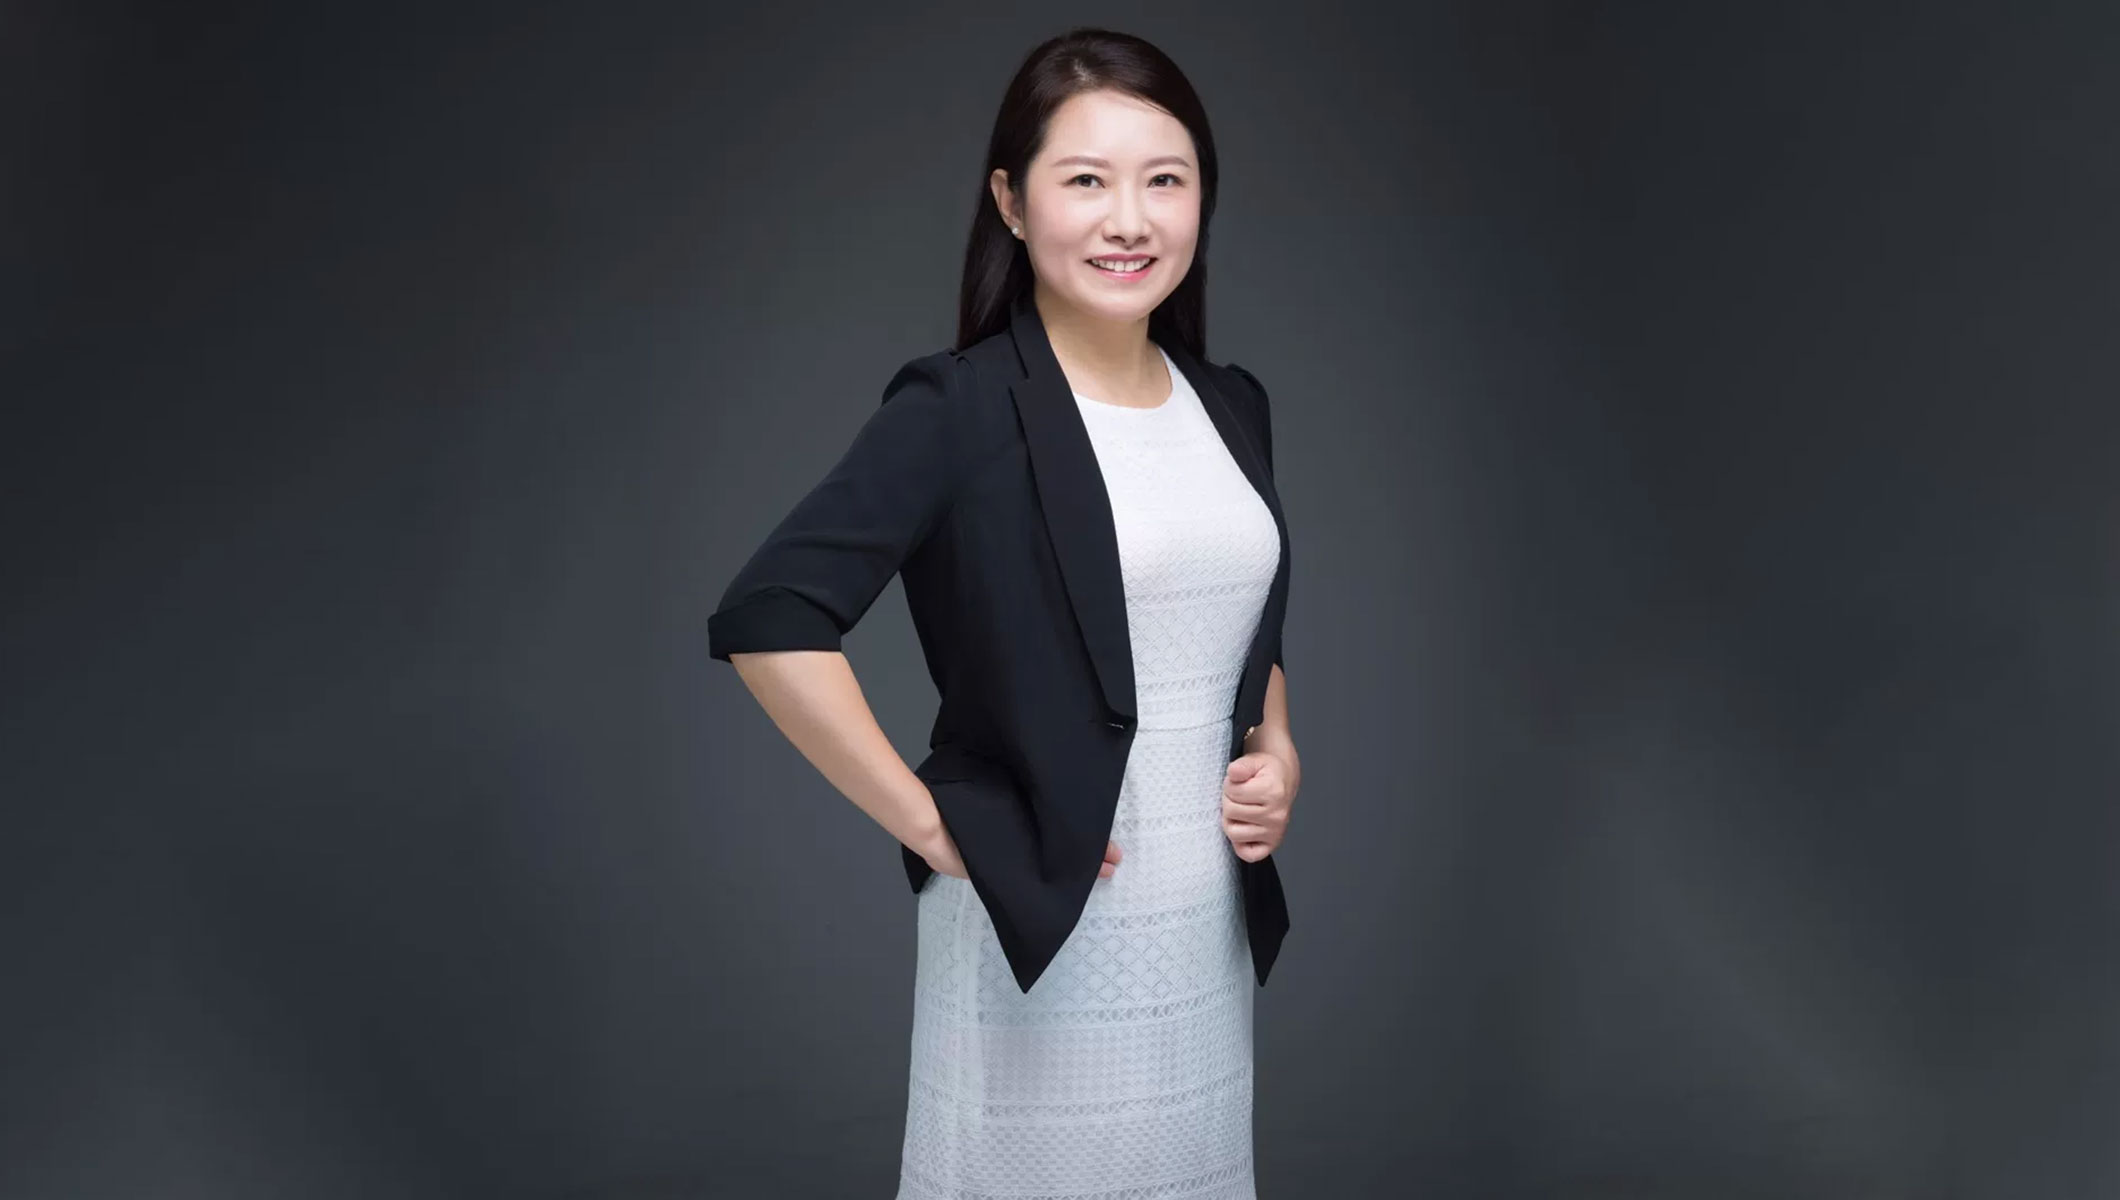 """Alibaba's Selina Yuan: """"The Olympic Games are one of the most powerful platforms for equality"""""""